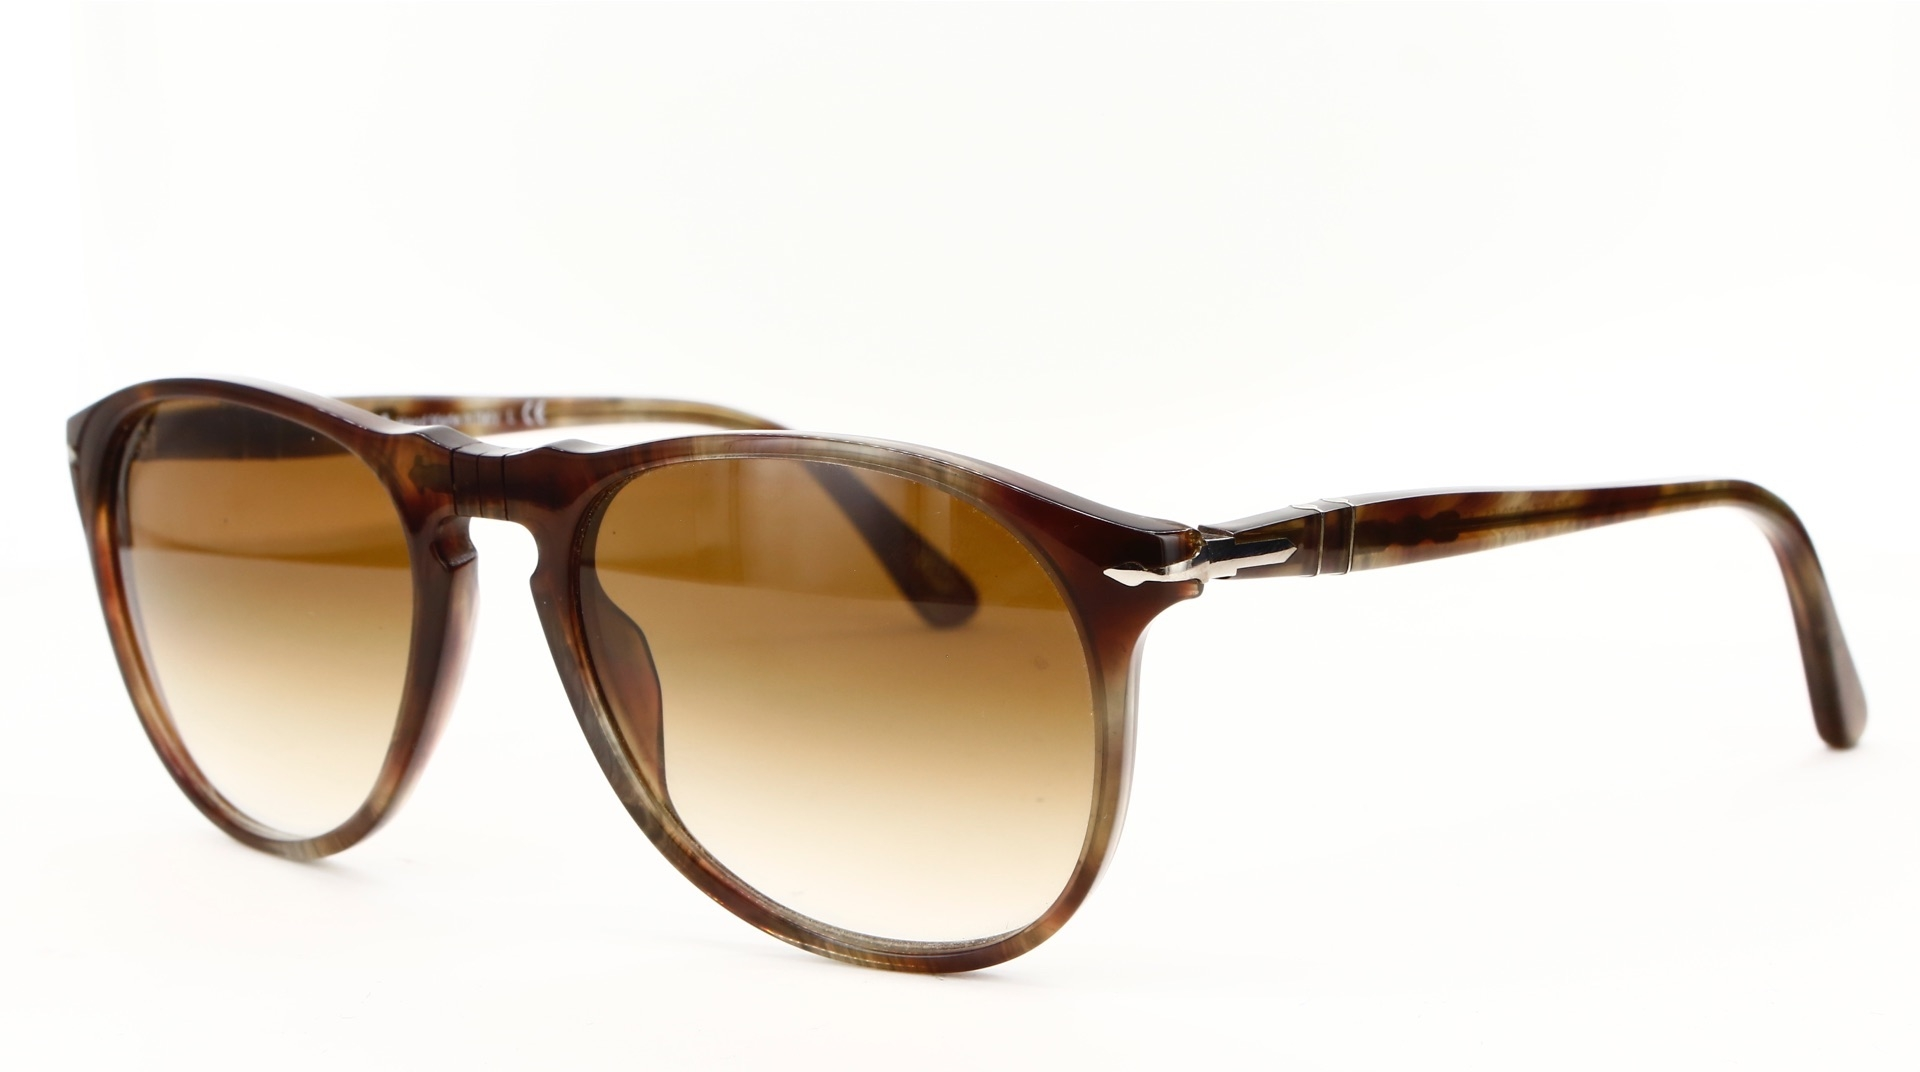 Persol - ref: 77867